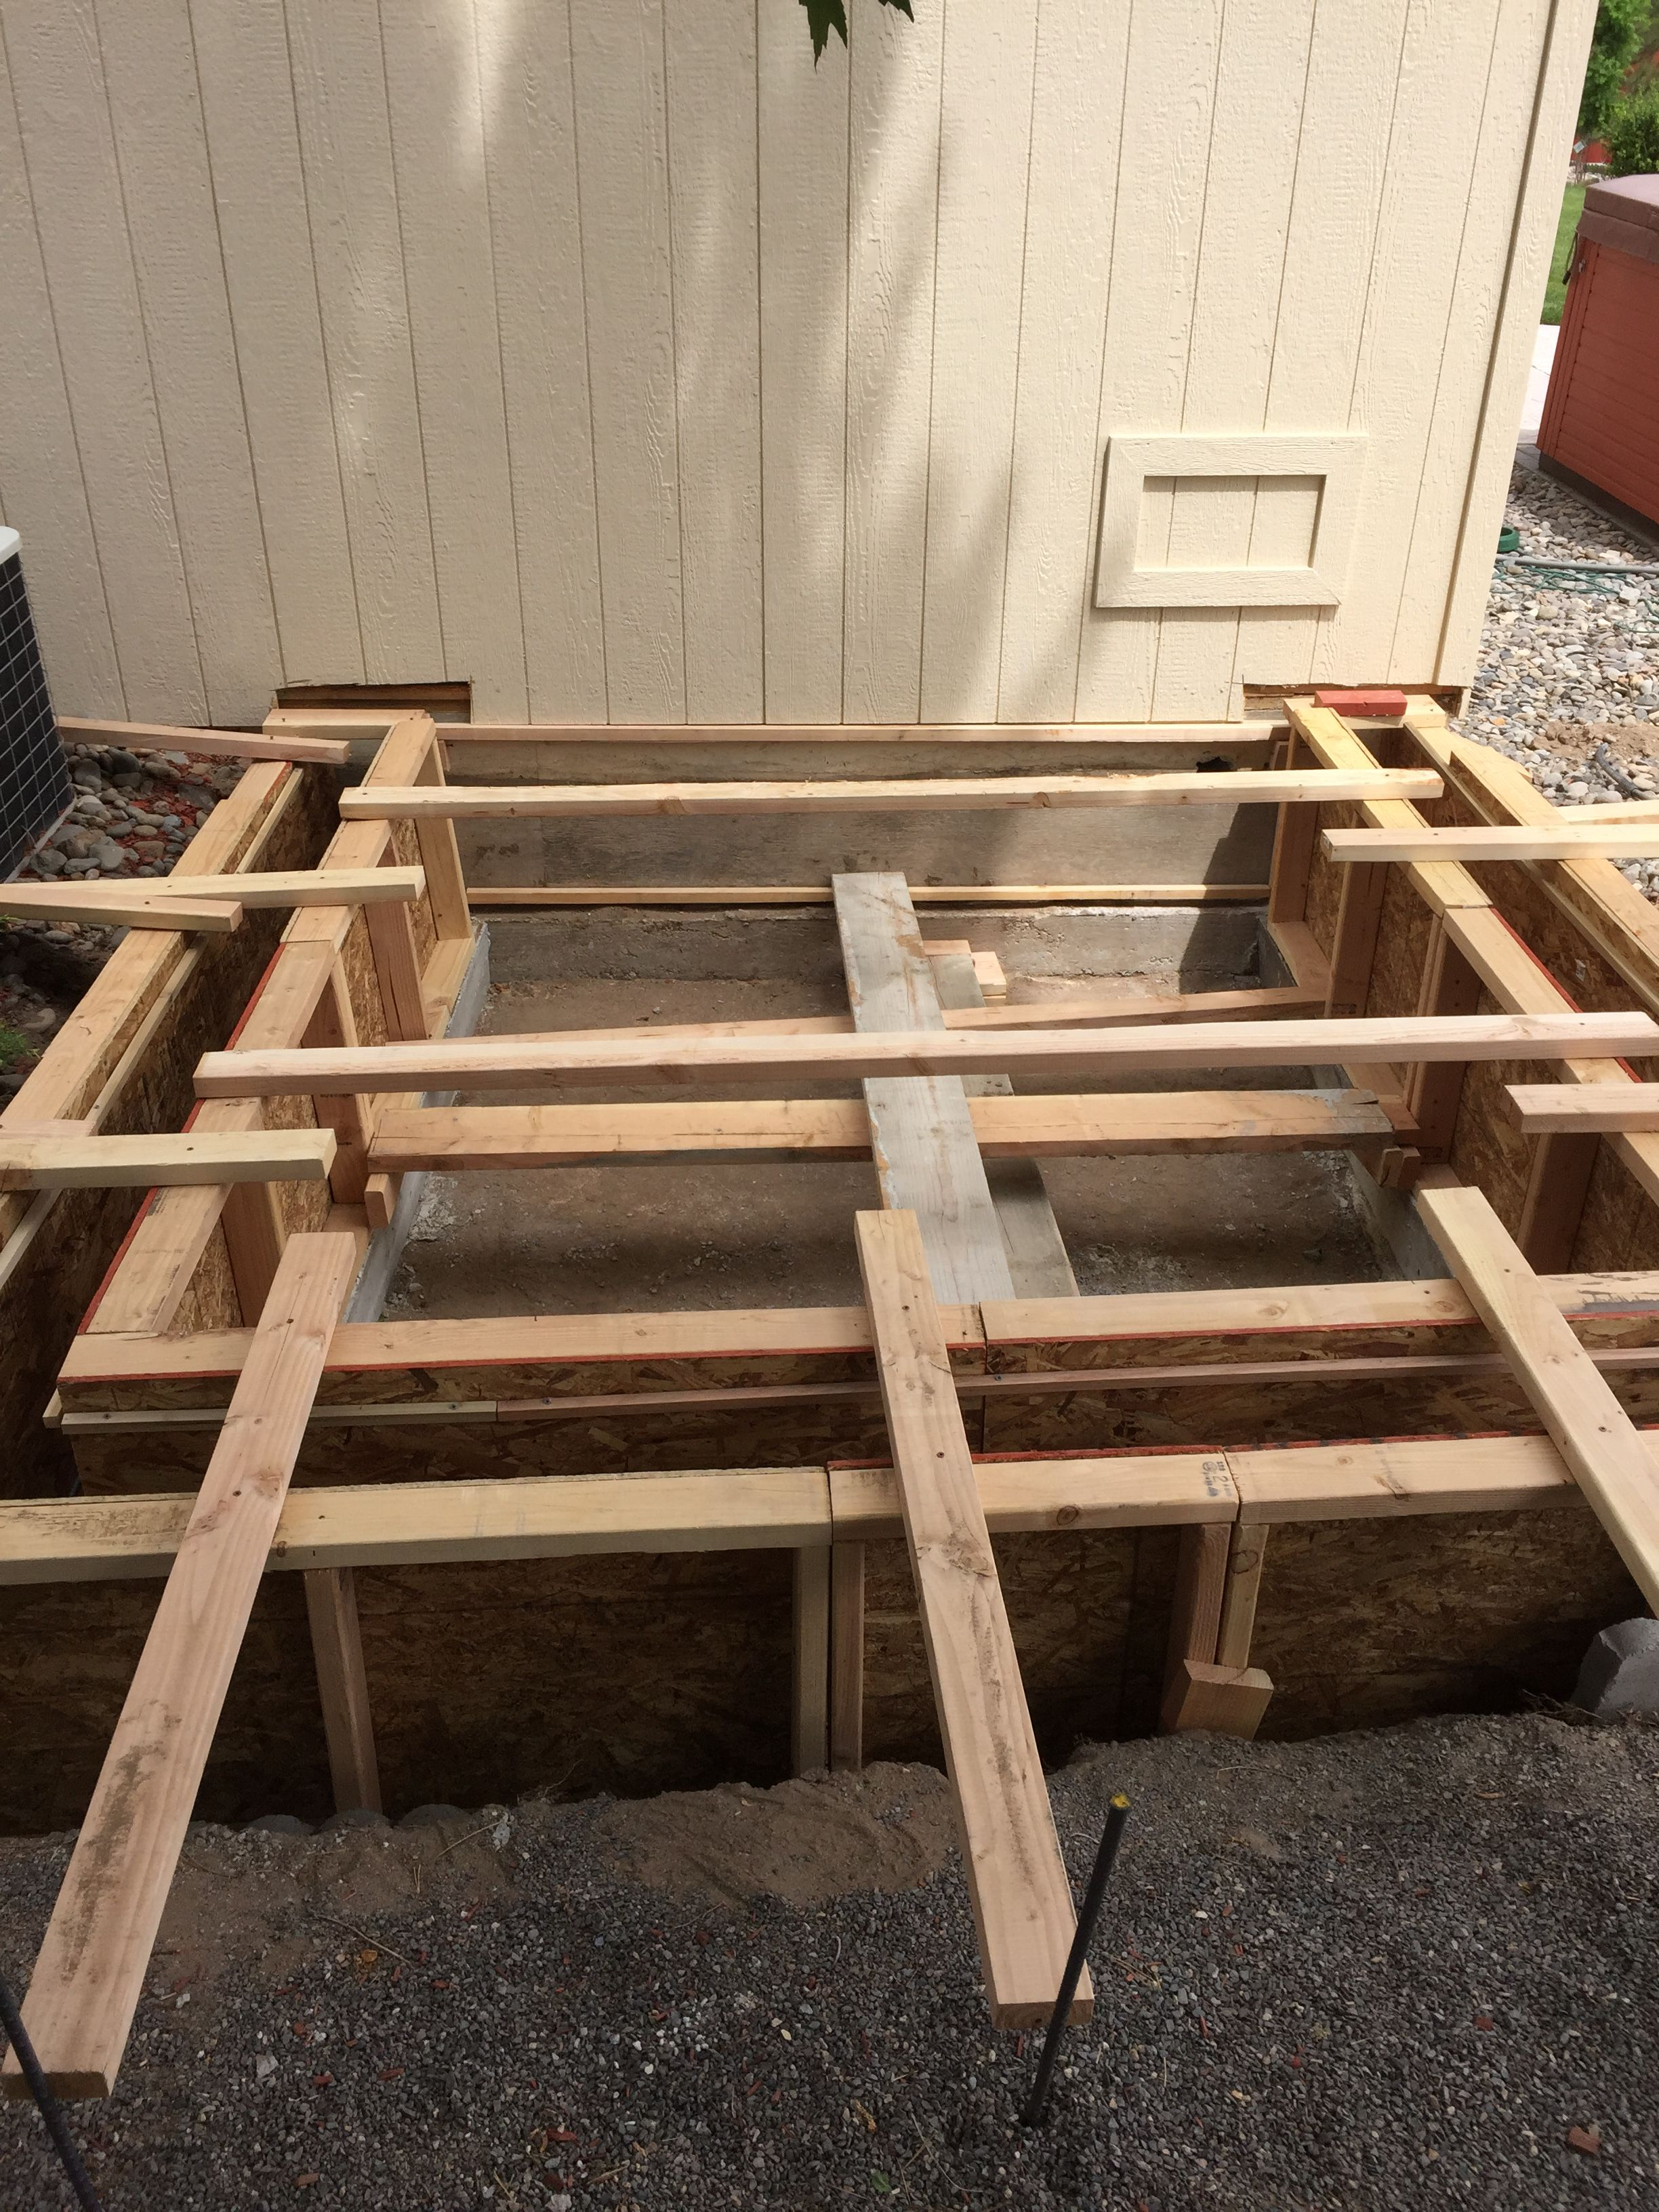 Rebar And Forms For Stem Wall For House Addition Minden Nv Home Additions Remodel House